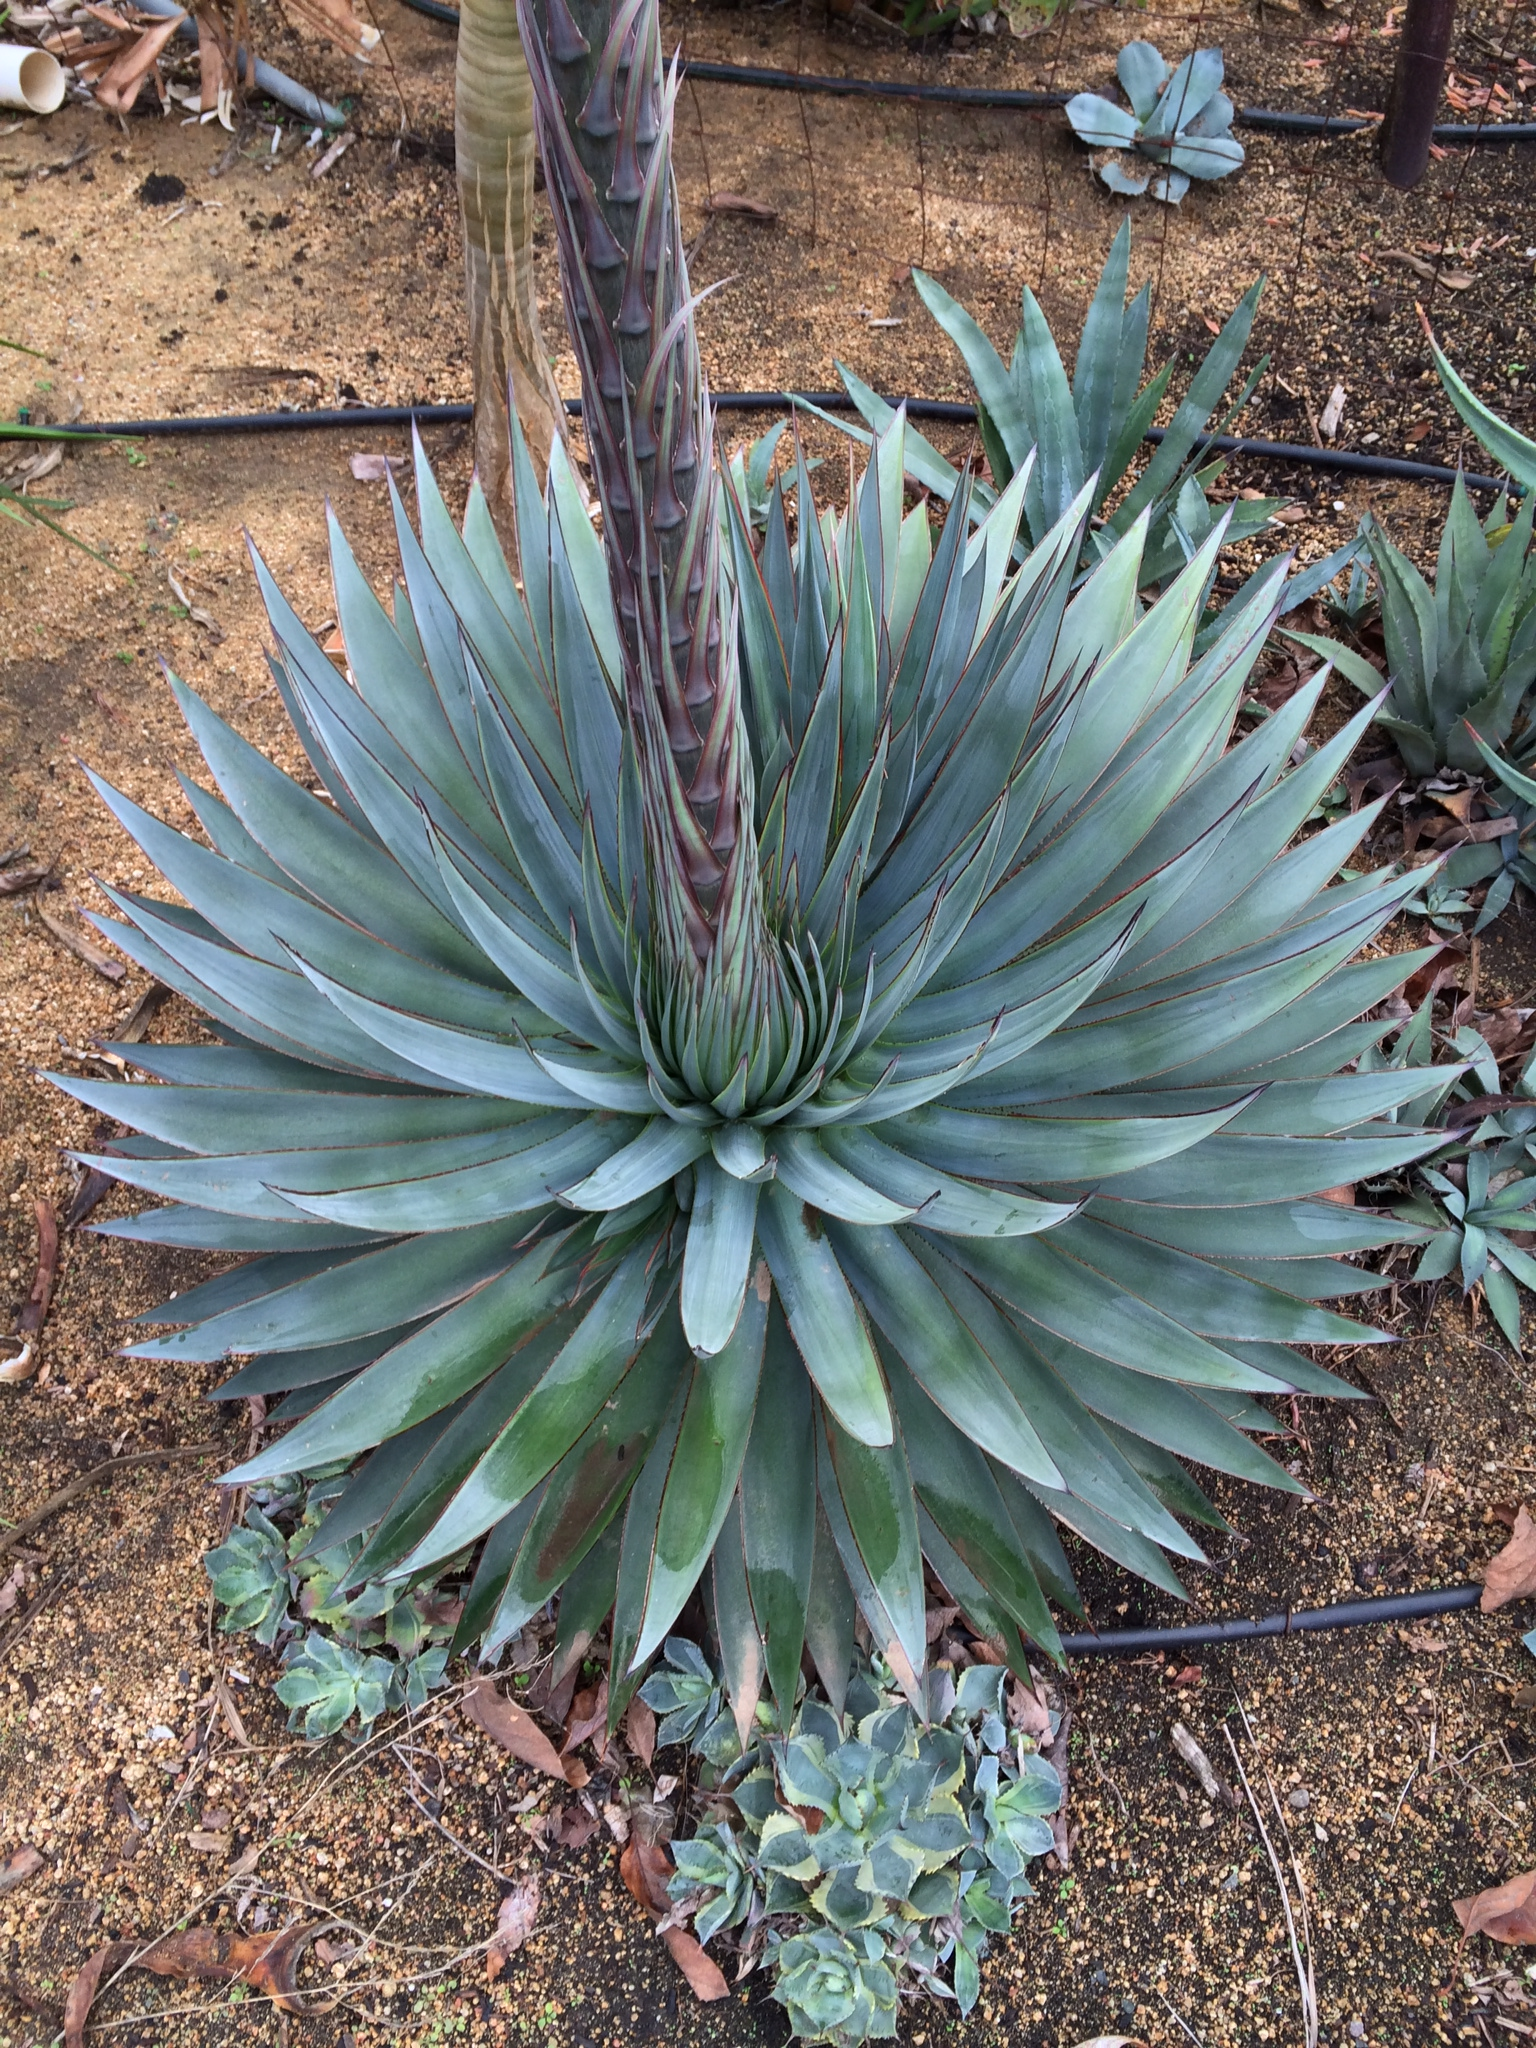 The Savvy Guyde: Know Your Poisons: Tequila |Blue Agave Plant